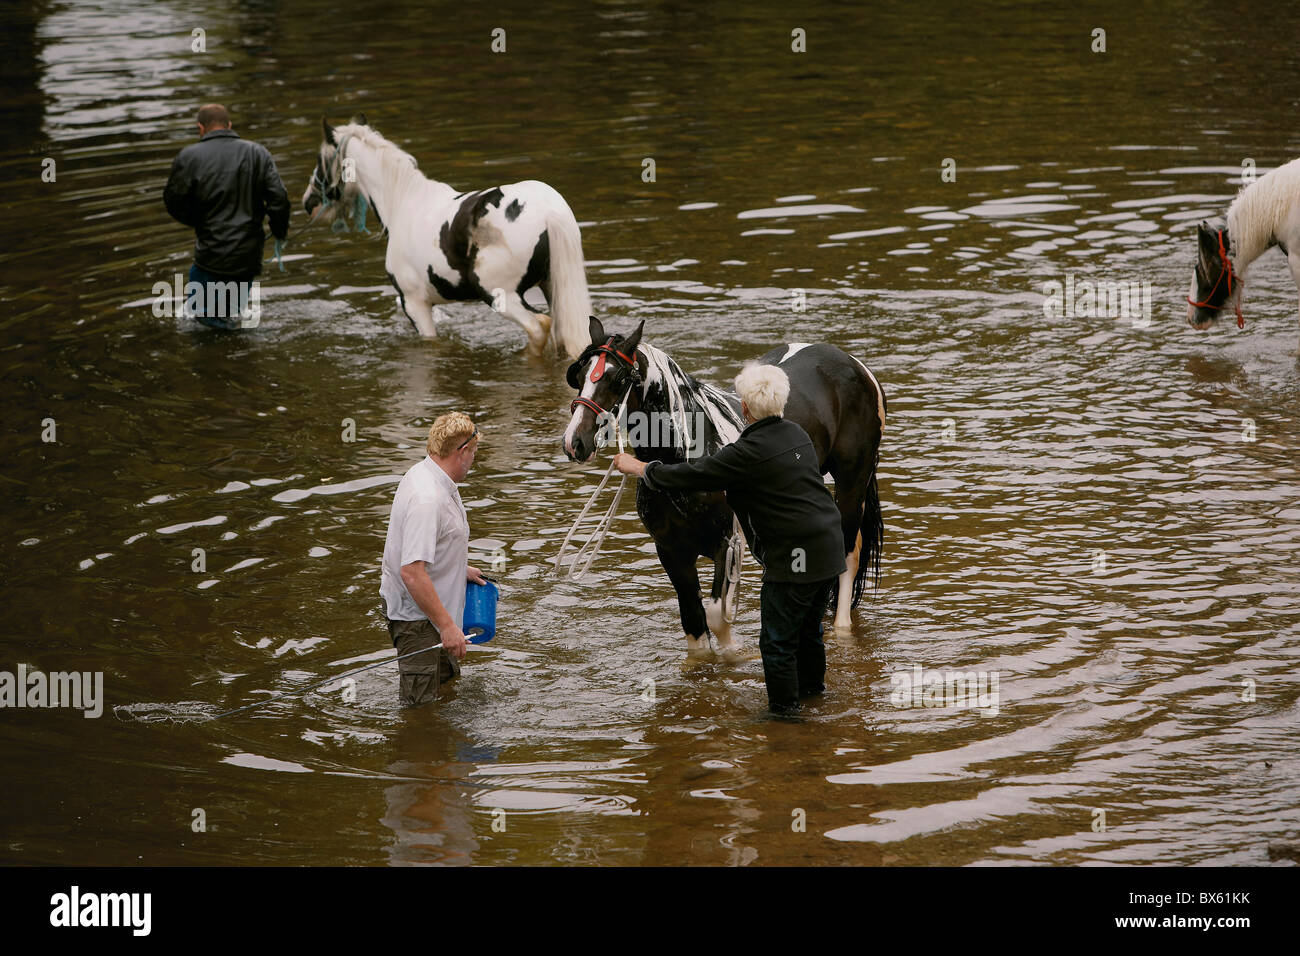 Gypsy travellers washing horses in the river Eden during the Appleby Horse Fair, Appleby-in-Westmorland, Cumbria, Stock Photo